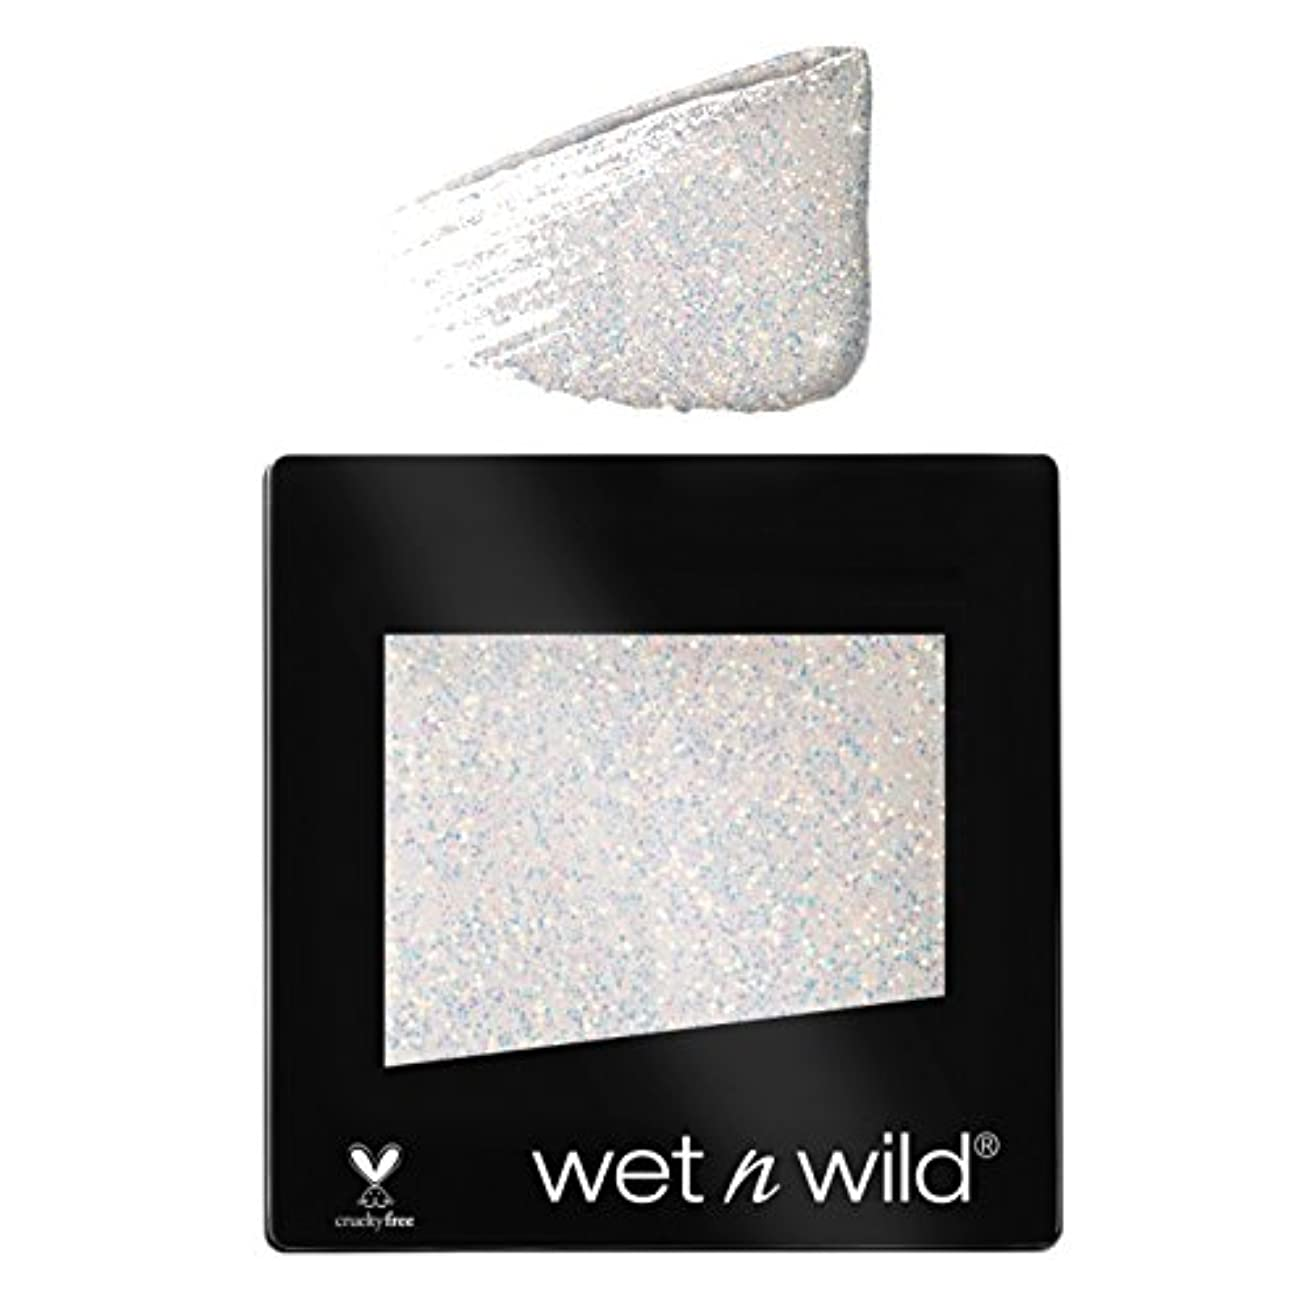 処方する風邪をひく彼らの(6 Pack) WET N WILD Color Icon Glitter Single - Bleached (NEW) (並行輸入品)